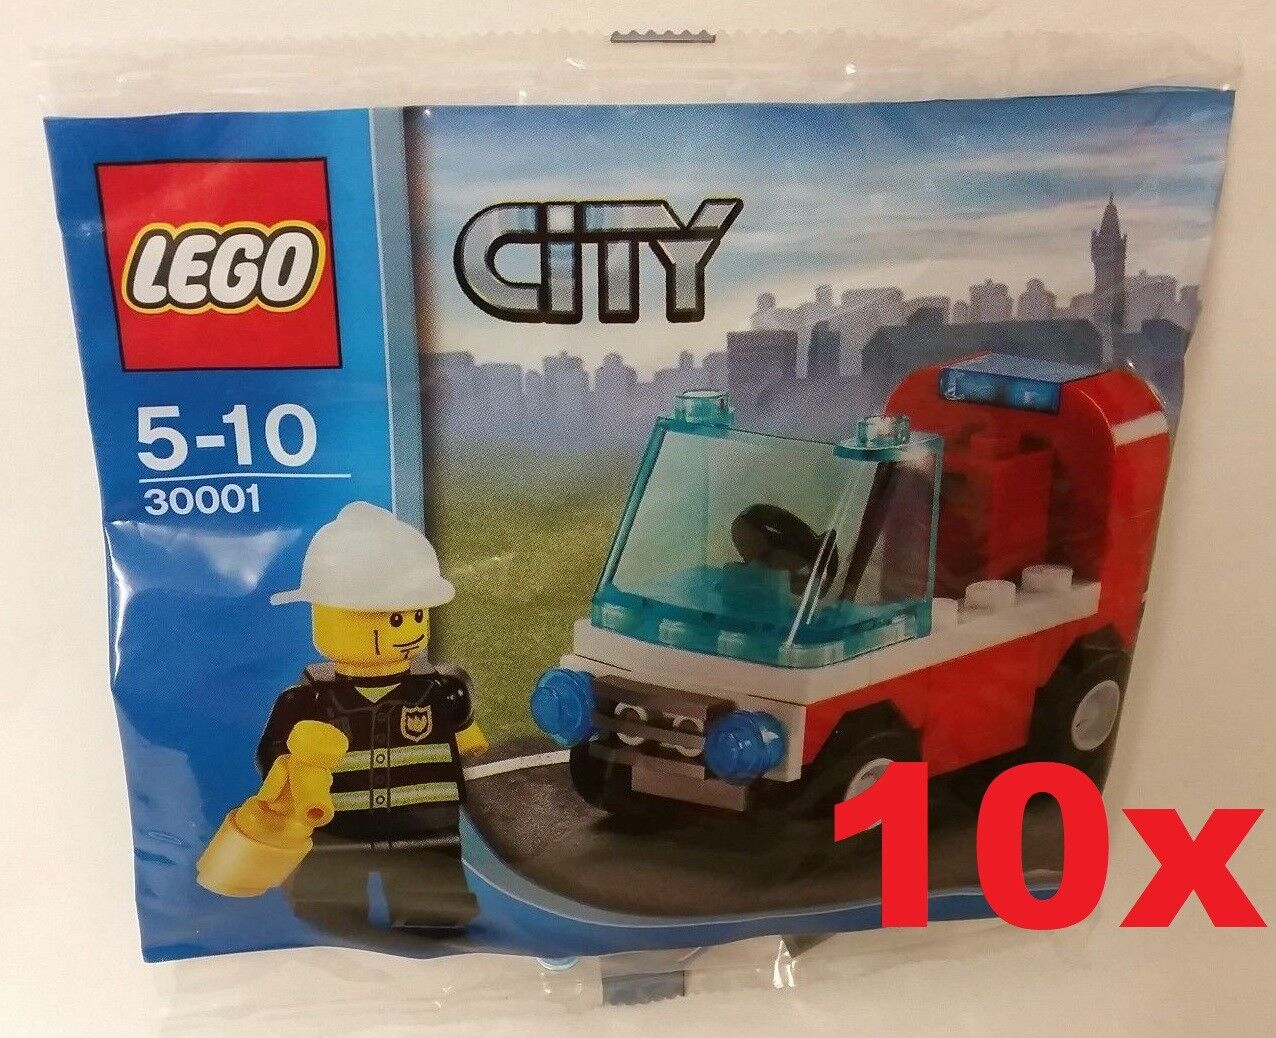 Lego 10 x x x City 30001 Polybag - Firefighter with Car - New Sealed b30b73